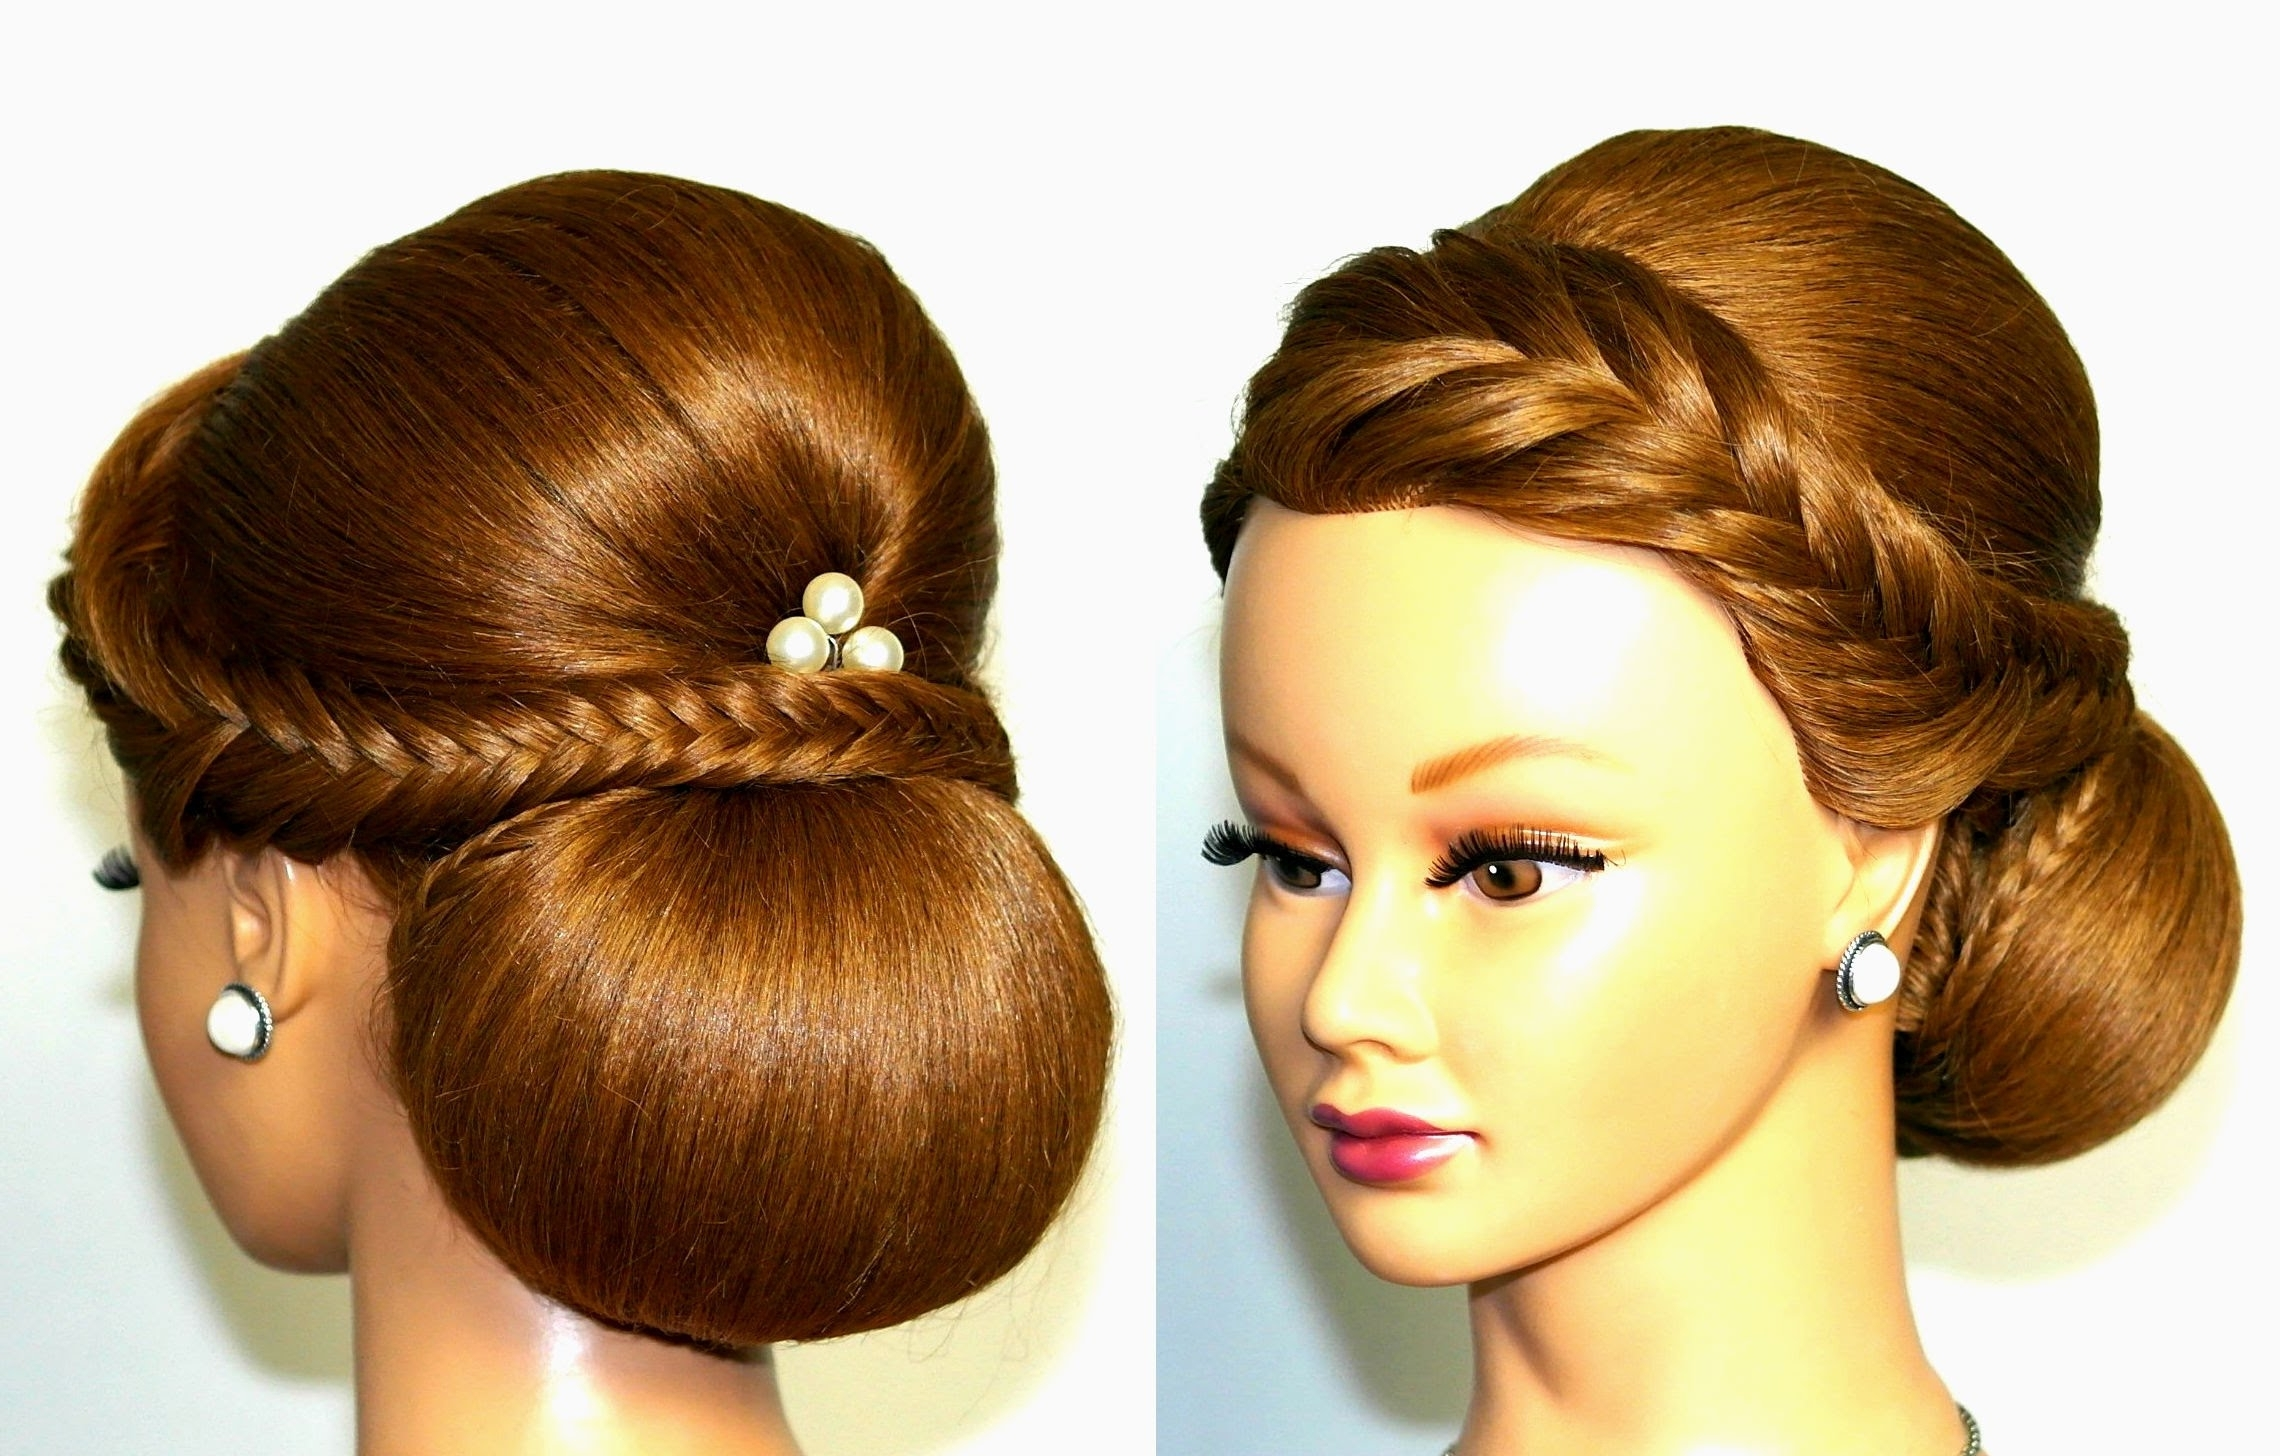 Trendy Put Up Wedding Hairstyles For Long Hair Within Wedding Hairstyle For Medium Long Hair, Elegant Updo (View 15 of 15)